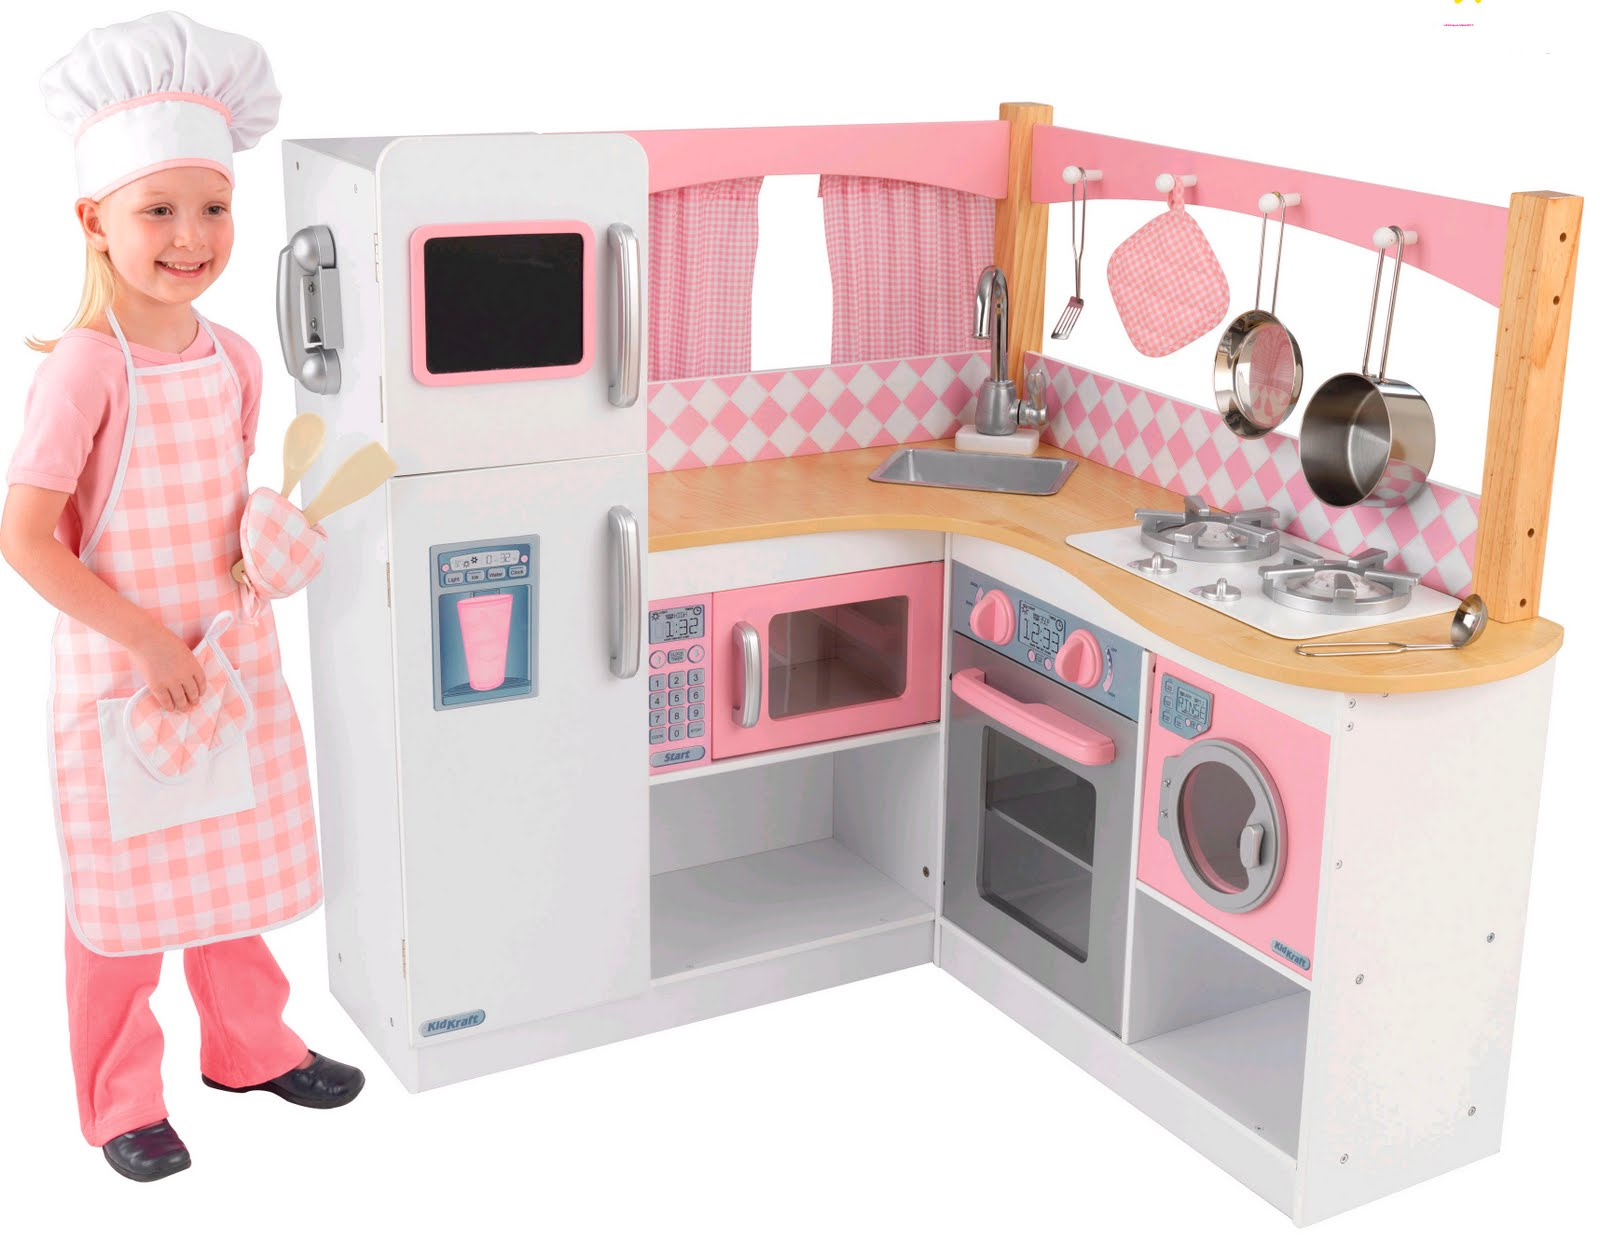 play kitchen for toddlers replacement doors cabinets children 39s wooden toys toy furniture